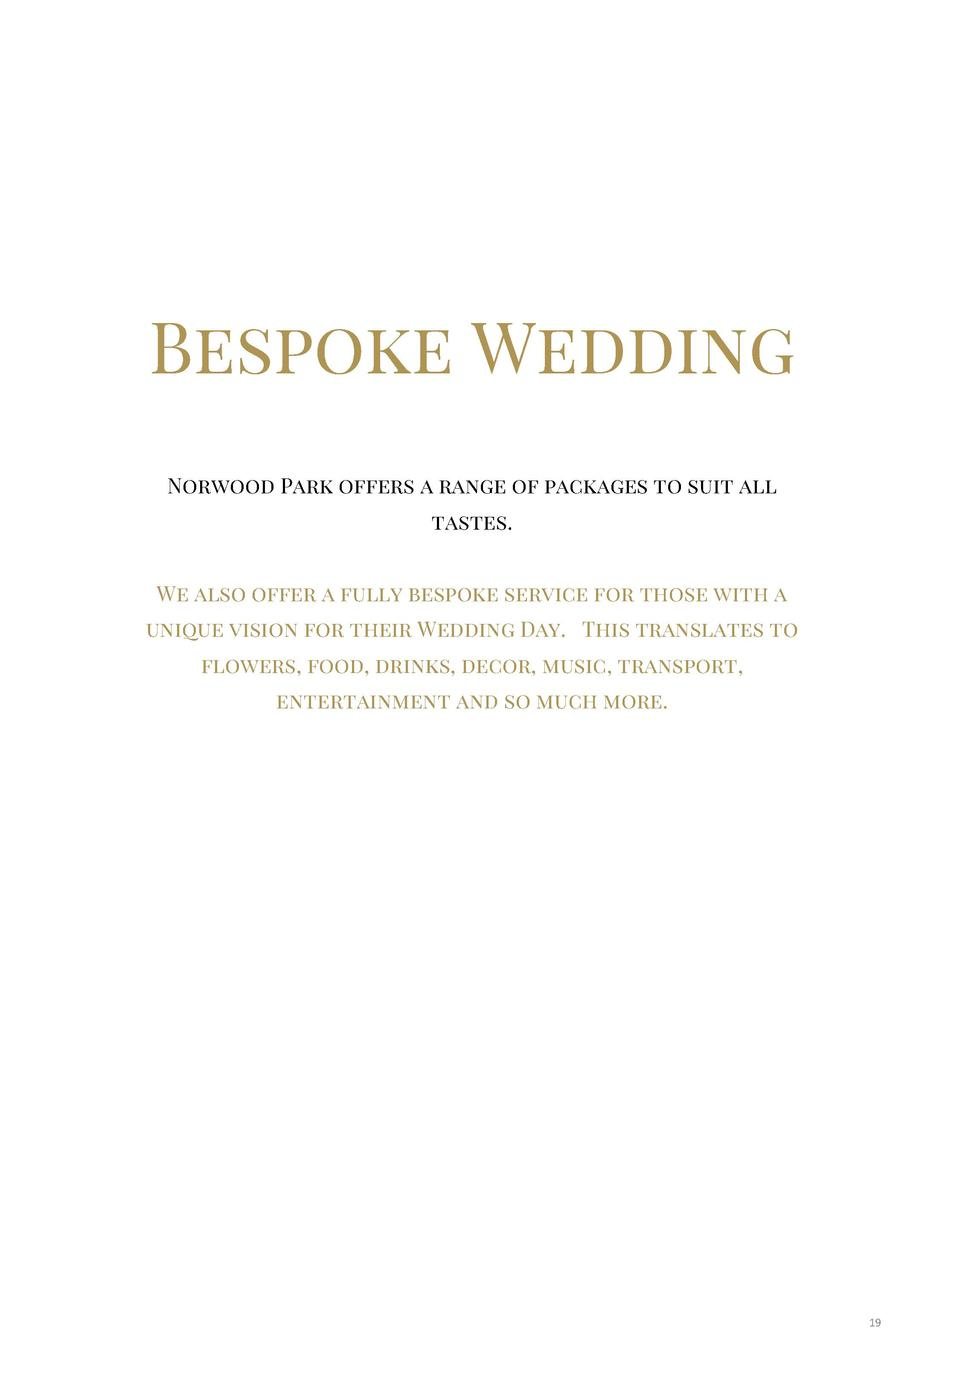 Bespoke Wedding Norwood Park offers a range of packages to suit all tastes. We also offer a fully bespoke service for thos...